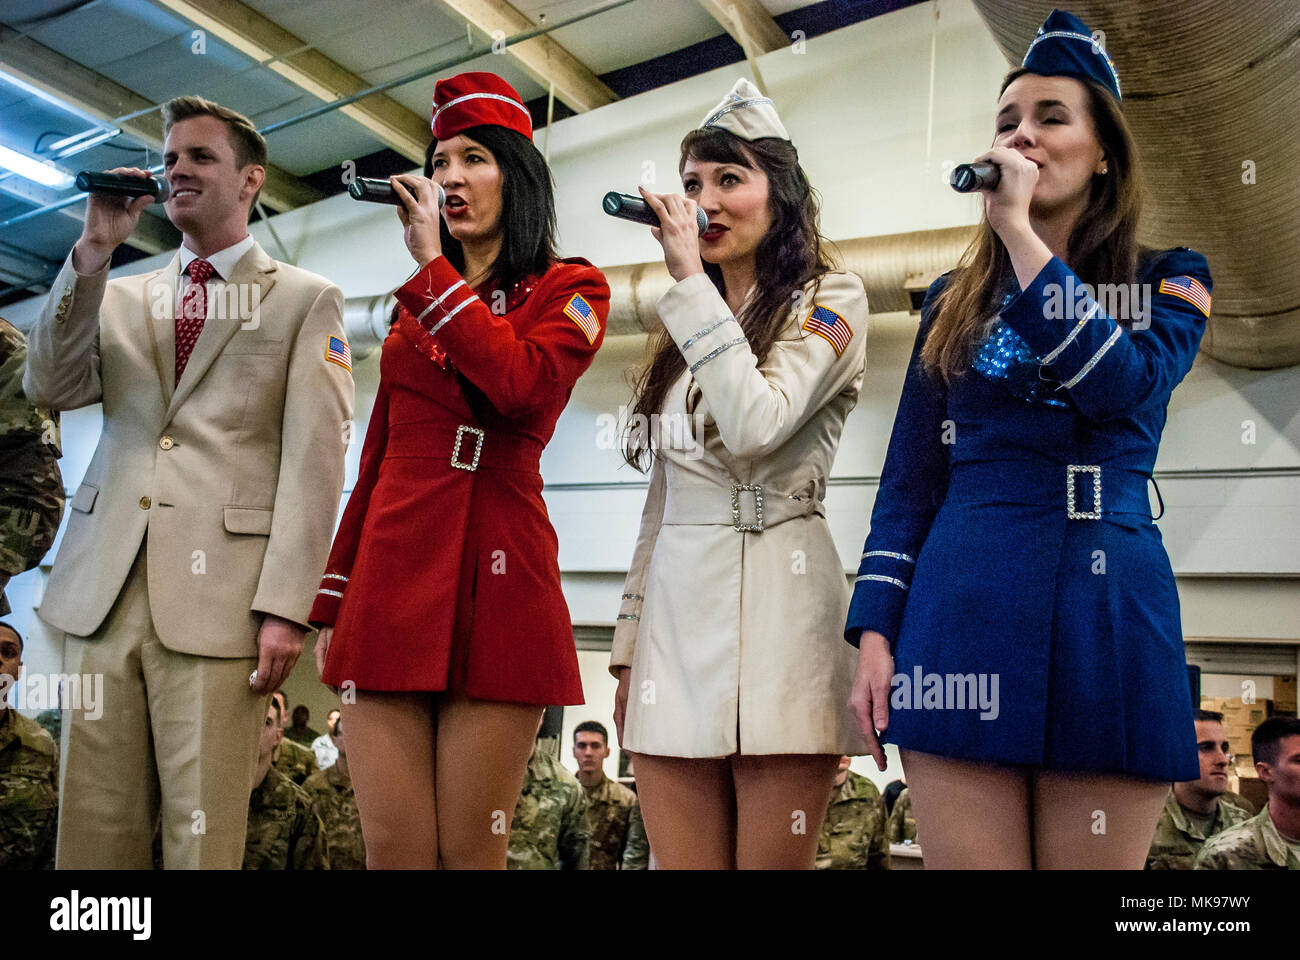 Brandon Riddle, Zoe Friedman, Amanda Downey, and Erin Long, members of the New York City based USO Show Troupe, sing the National Anthem prior to the beginning of the lottery portion of the 20th annual Randy Oler Memorial Operation Toy Drop, Dec. 1, 2017. Operation Toy Drop is the world's largest combined airborne operation with nine partner nation paratroopers participating and allows Soldiers the opportunity to train on their military occupational specialty, maintain their airborne readiness, and give back to the local community. (U.S. Army photo by Staff Sgt. Timothy R. Koster) - Stock Image